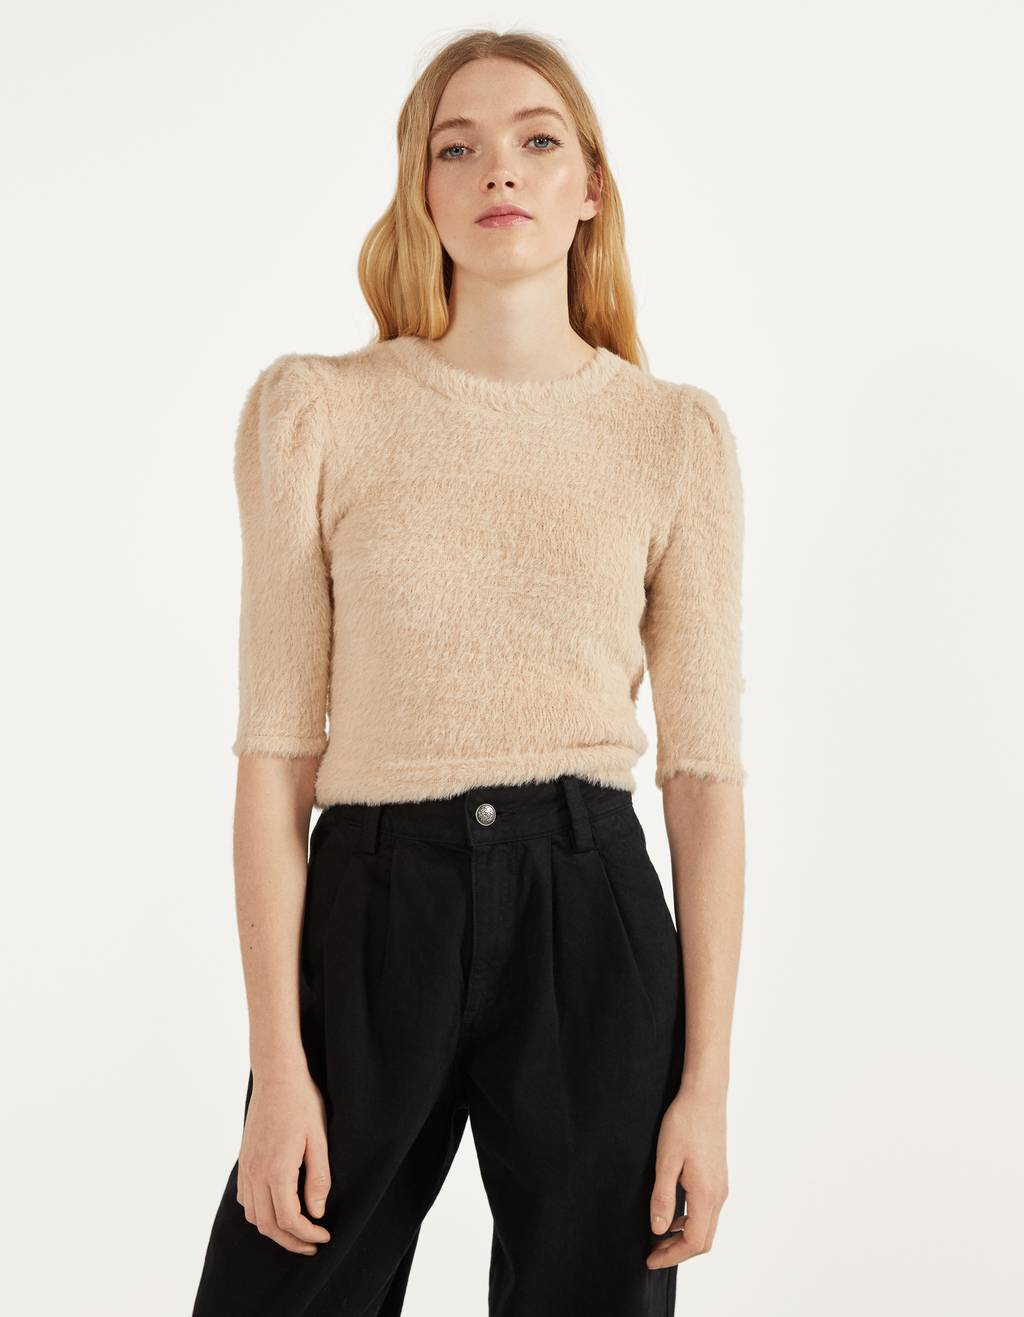 Fluffy puff sleeve top